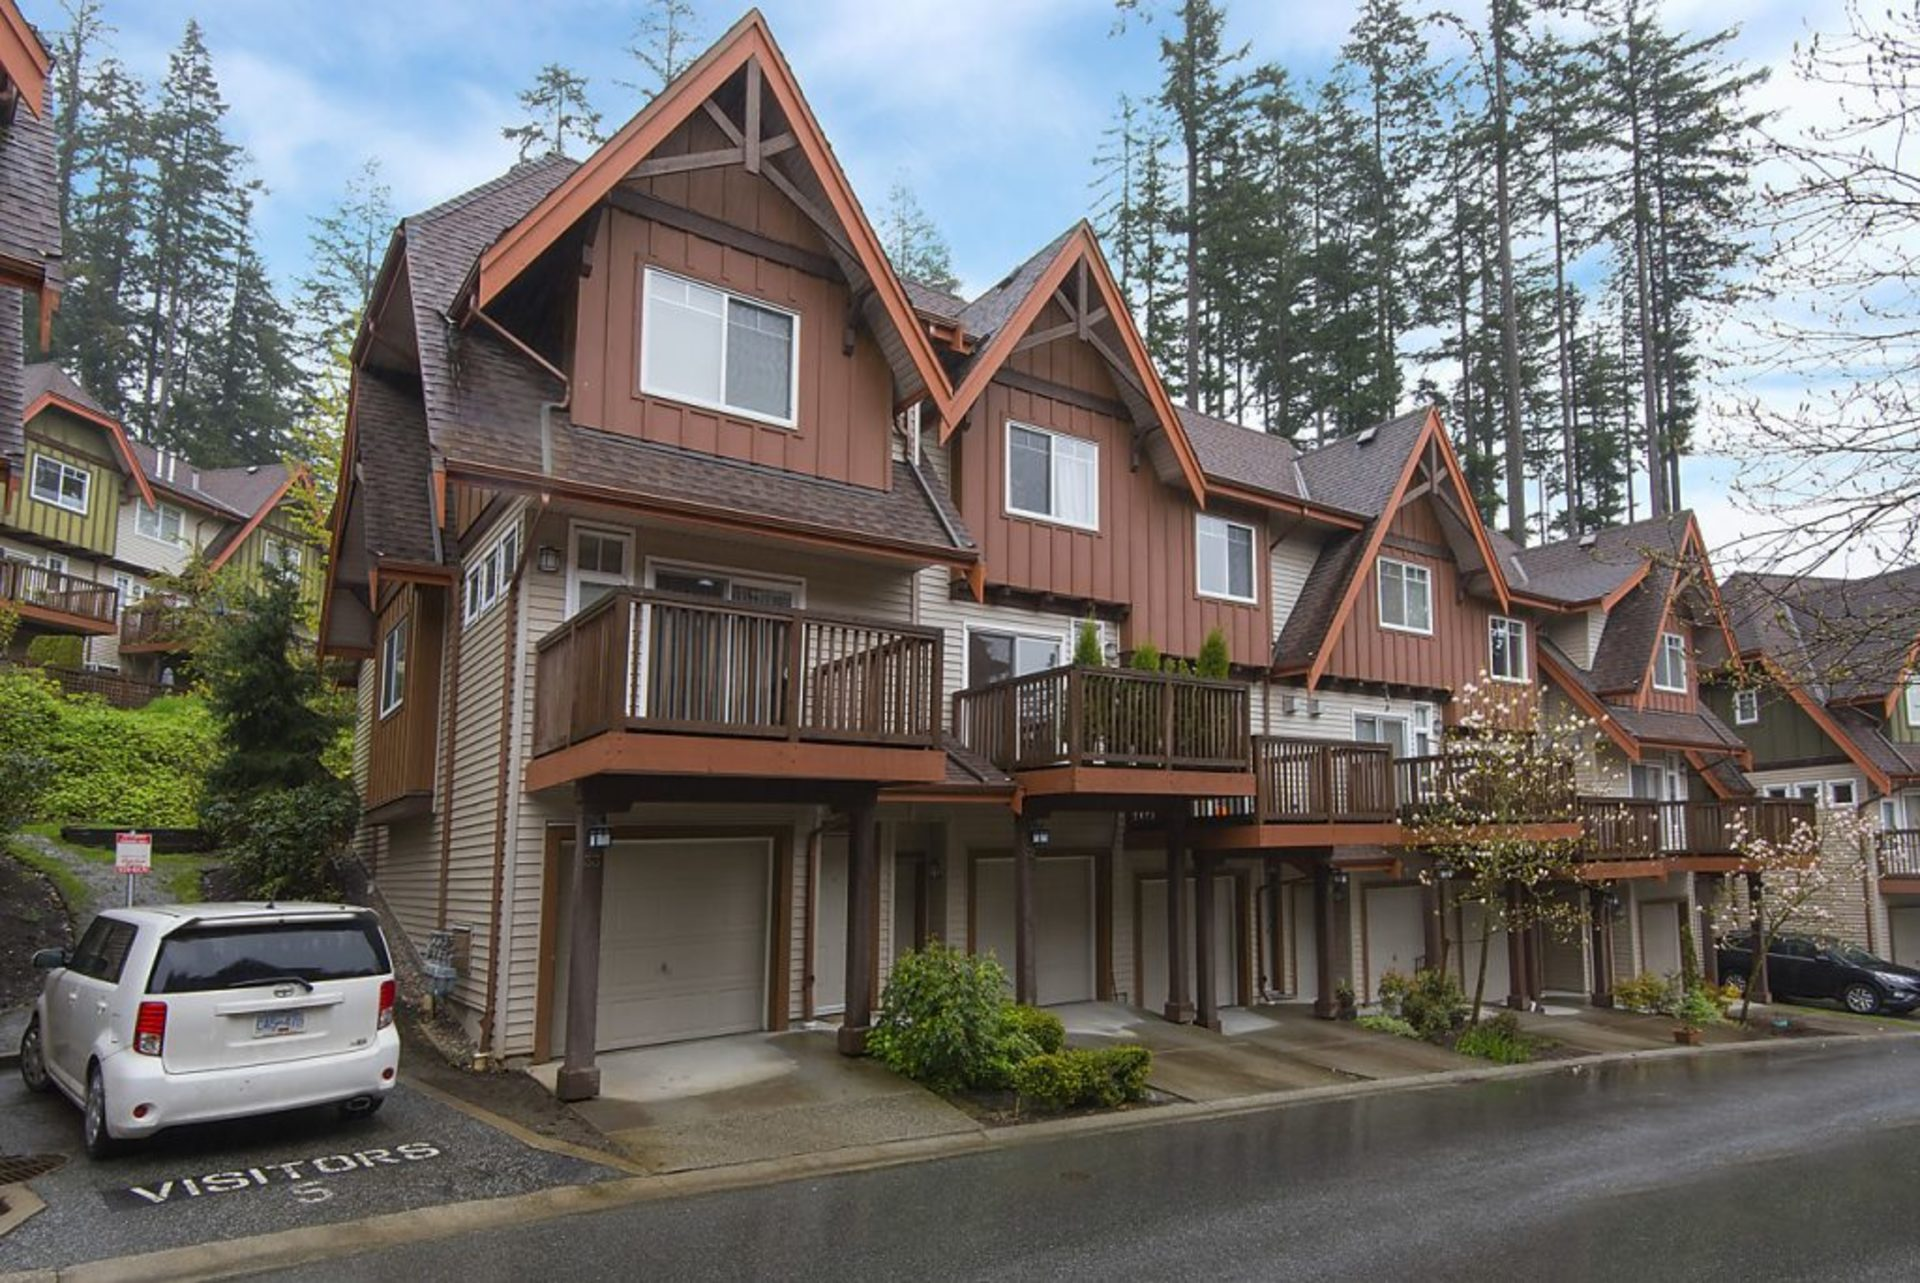 32 - 2000 Panorama Drive, Heritage Woods PM, Port Moody